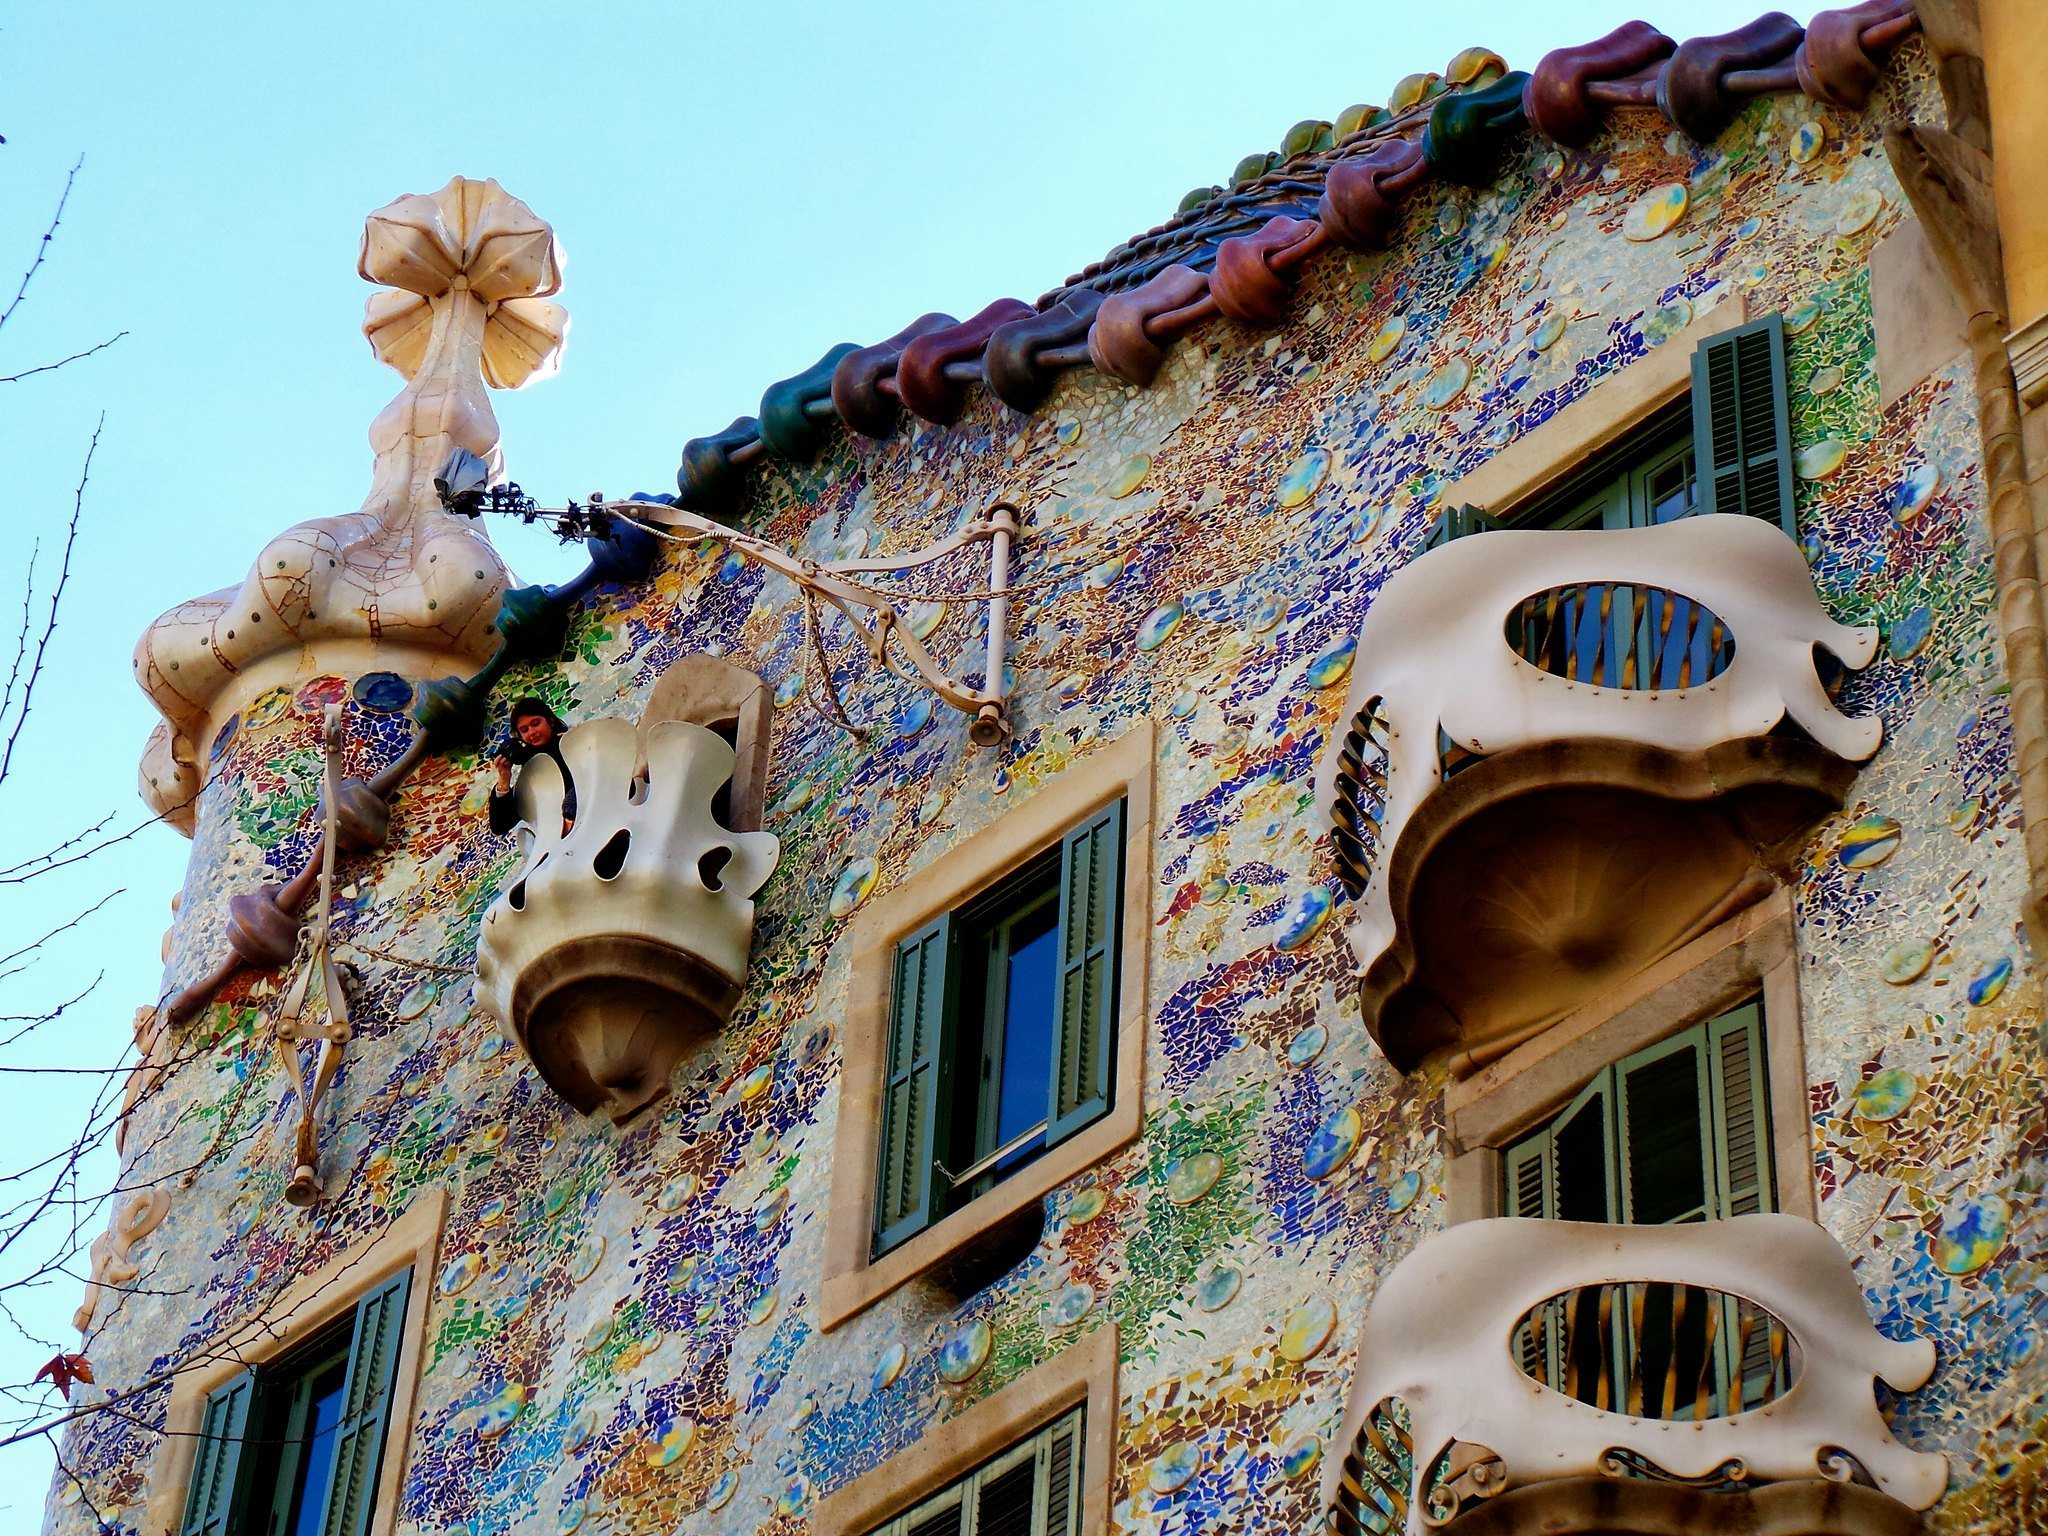 Tips on Visiting Casa Batllo4